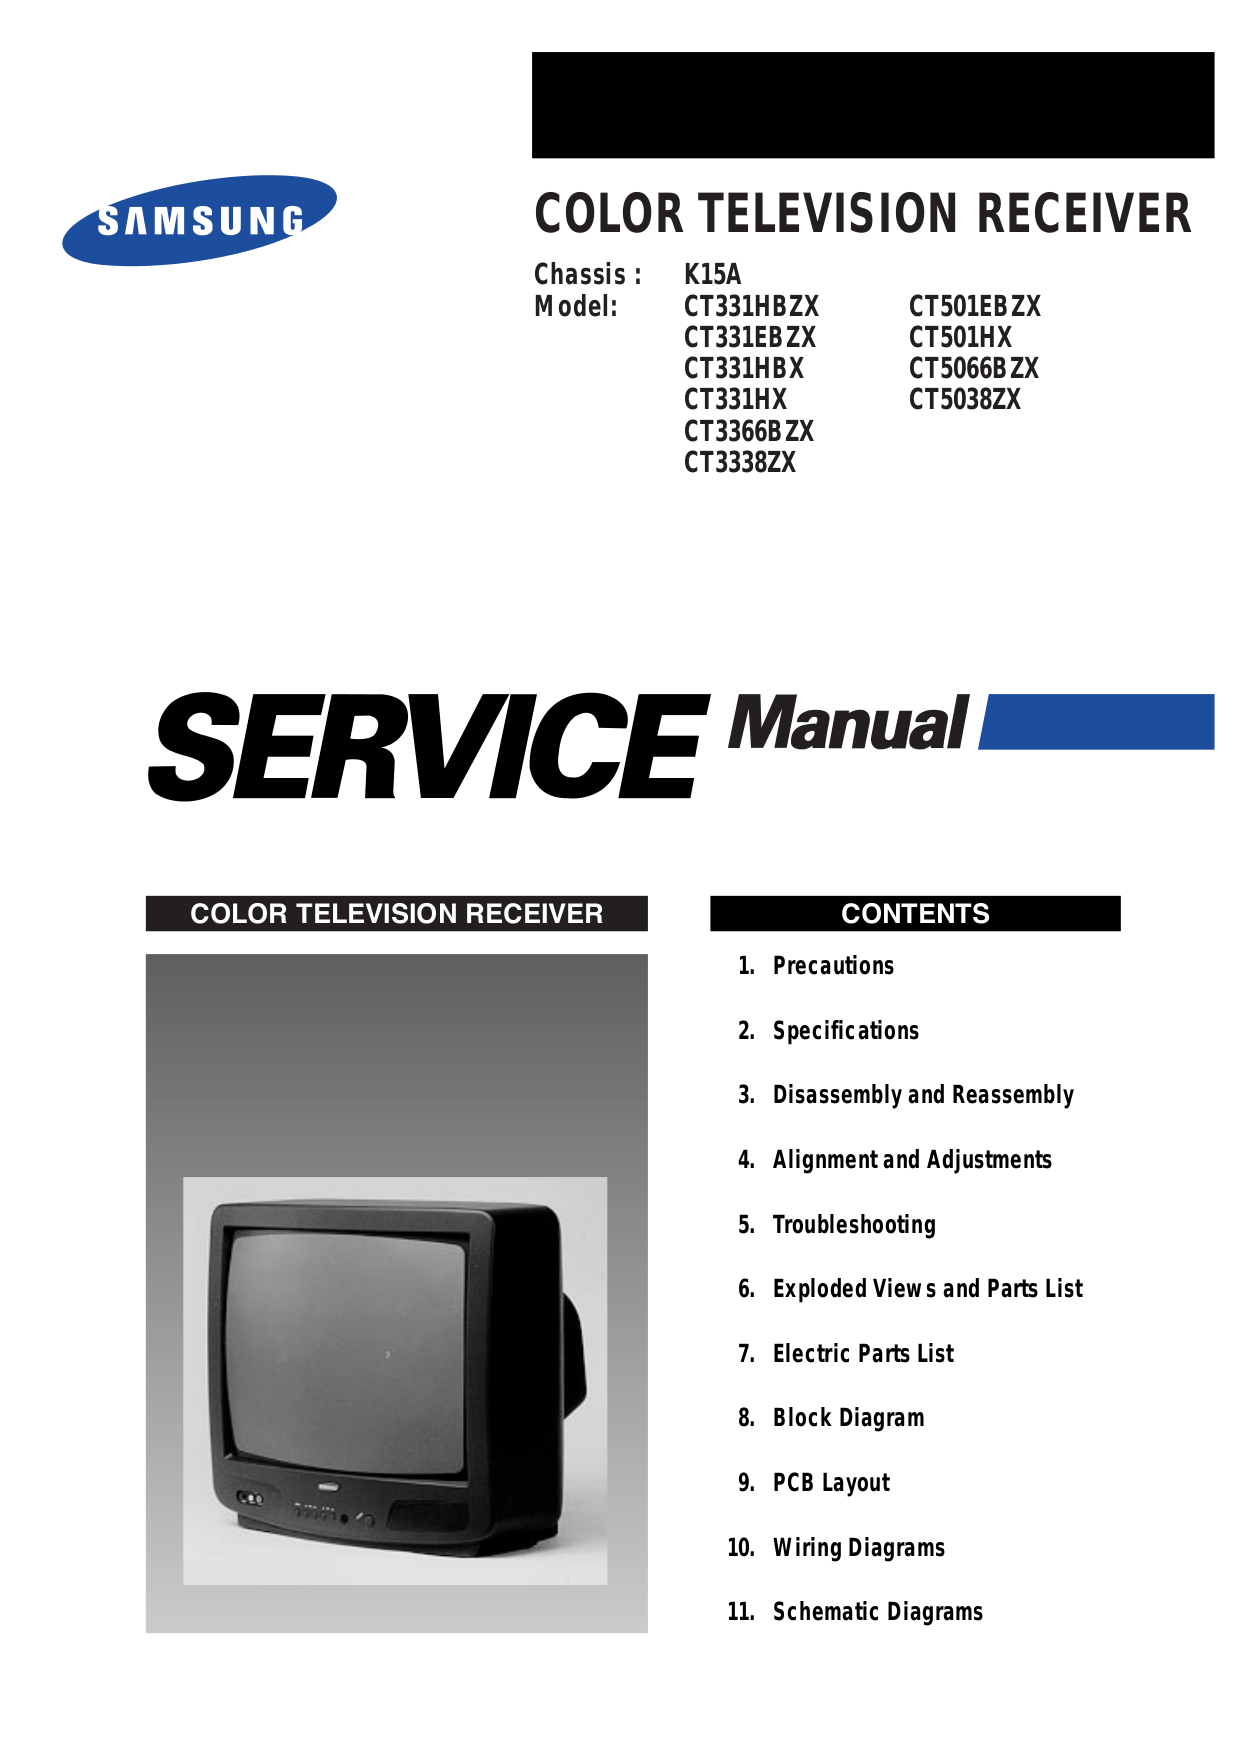 Owners manual Download Samsung Smart Tv Series 6000 Hdmi